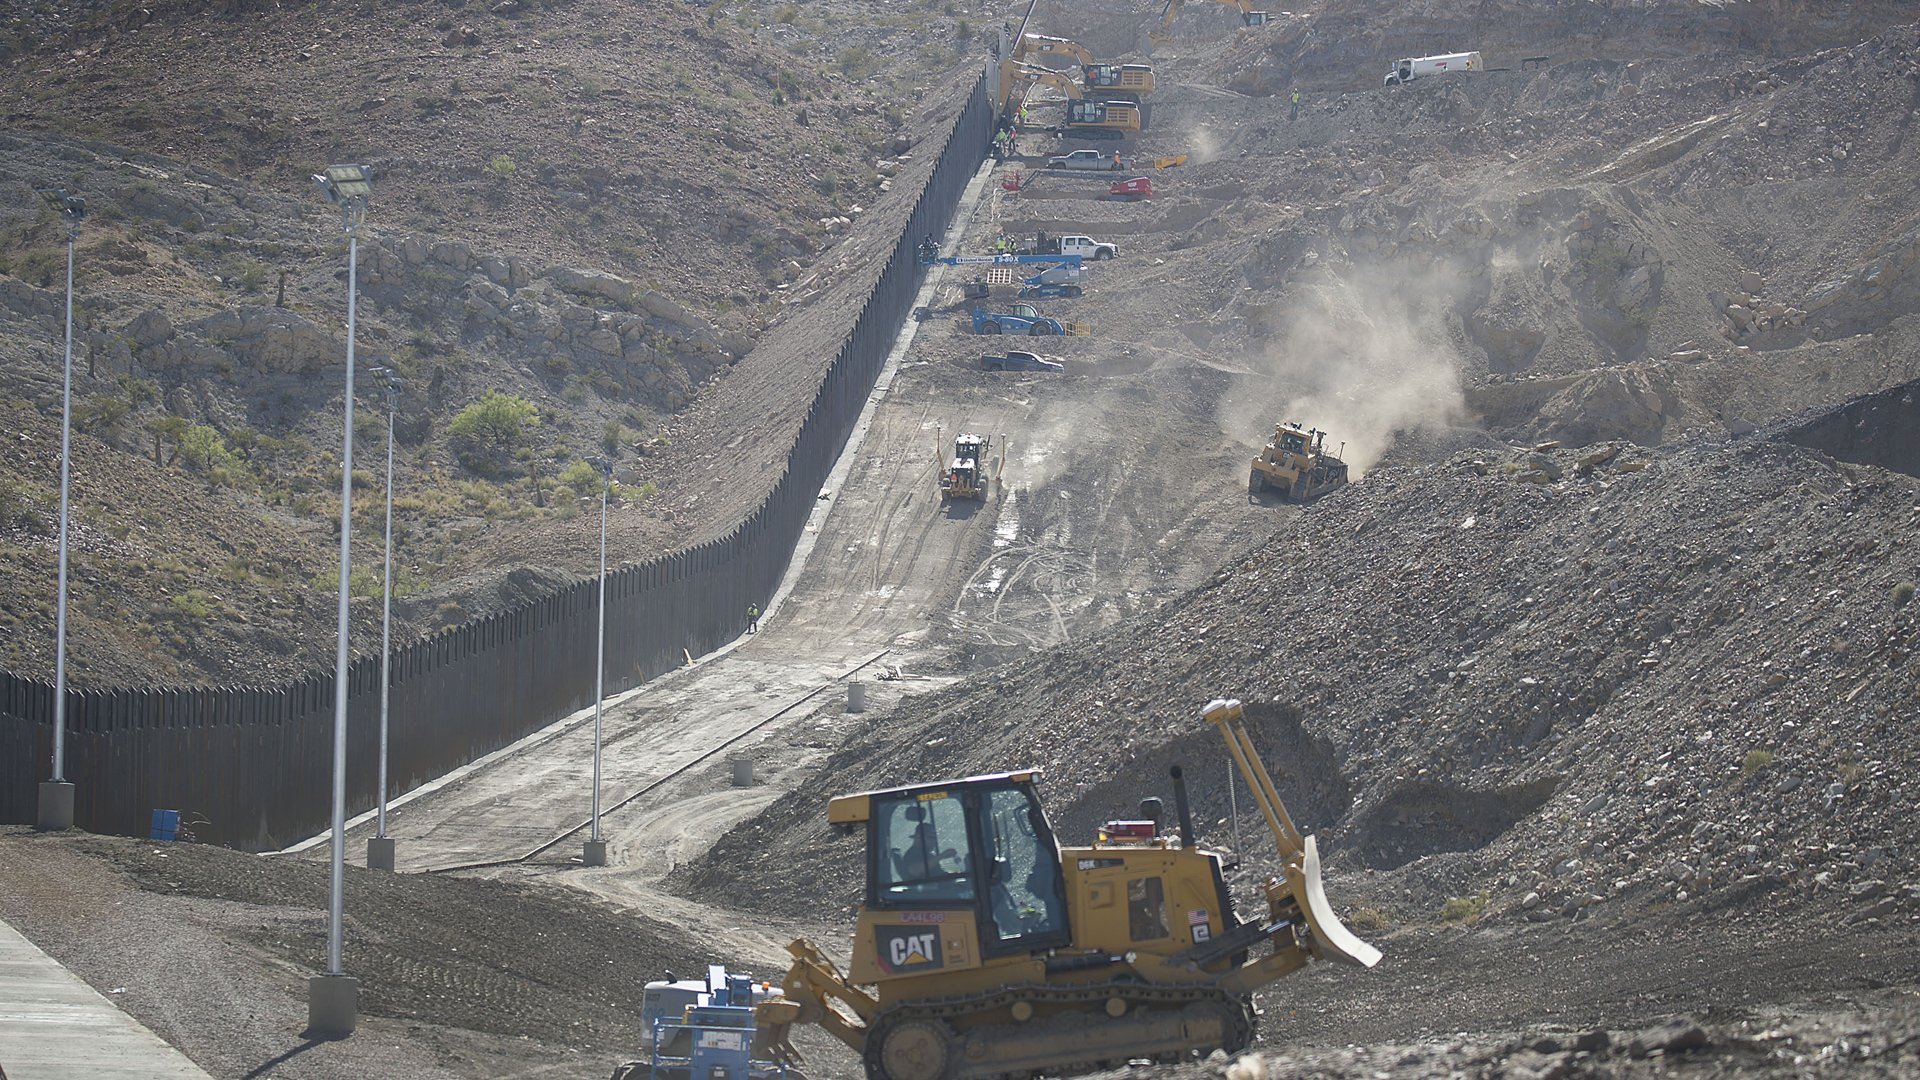 Construction crews work on a border wall being put in place by the We Build The Wall Inc. non-profit on June 1, 2019, in Sunland Park, New Mexico. (Credit: Joe Raedle/Getty Images)